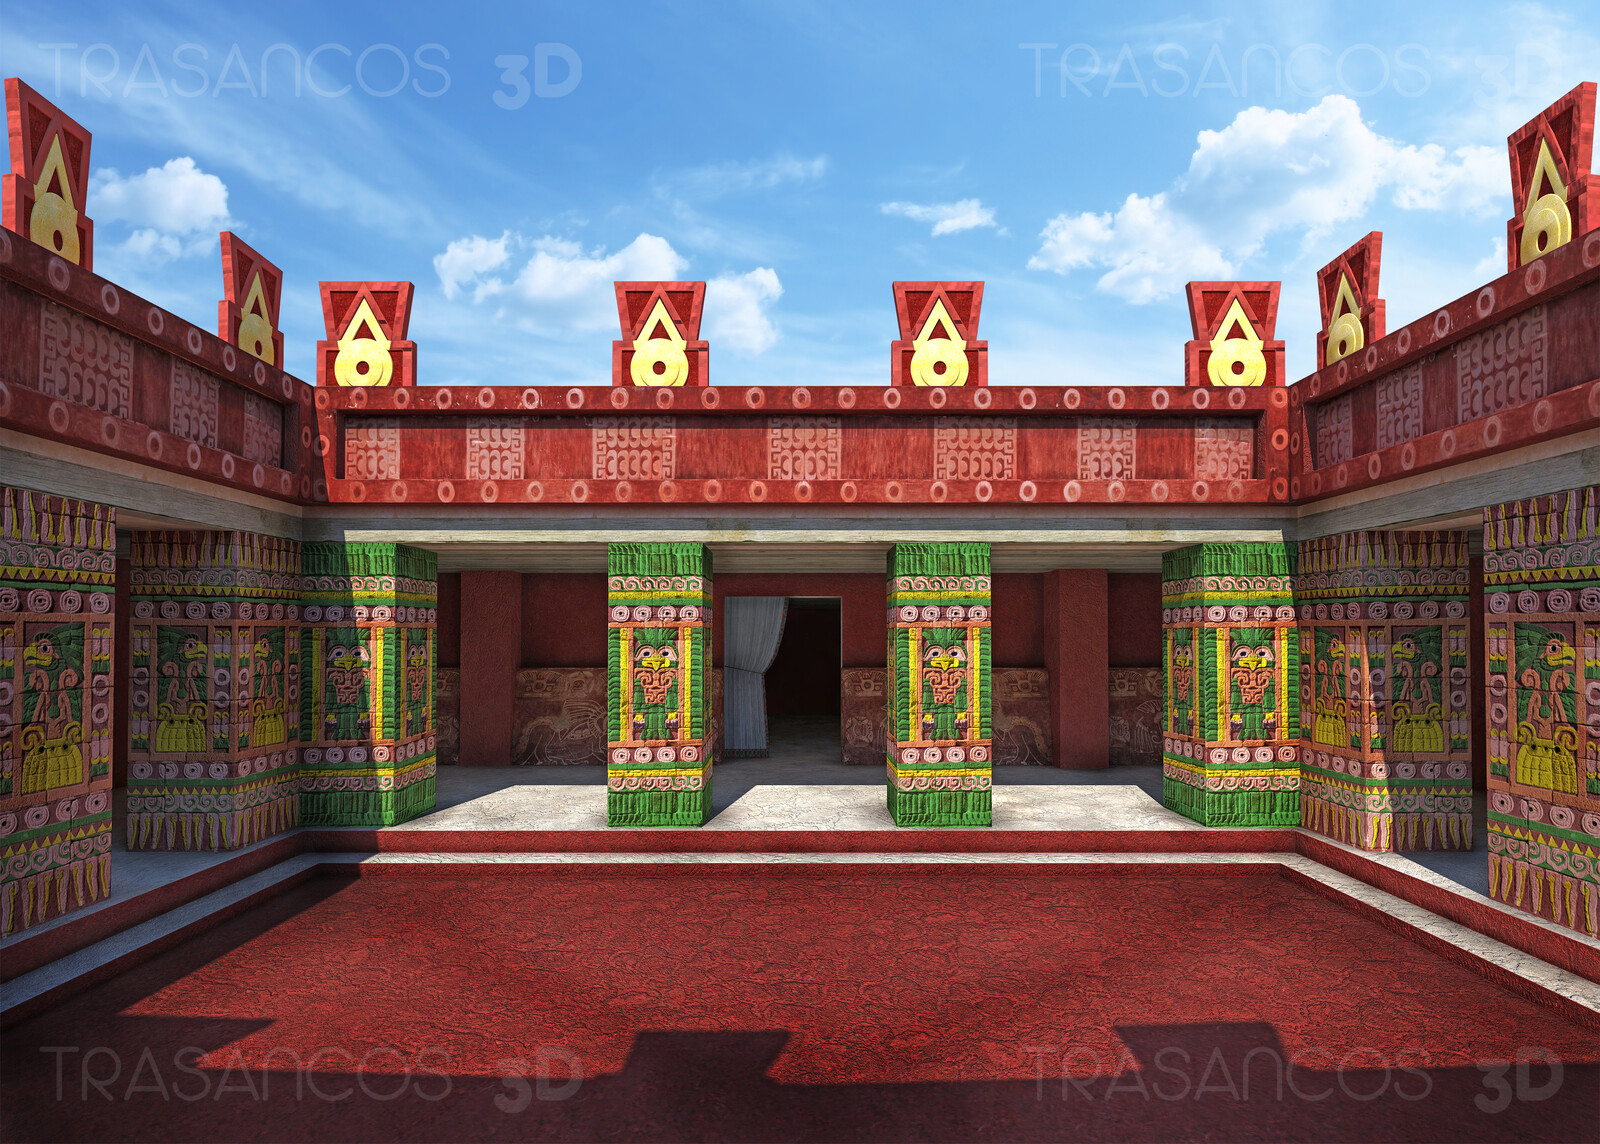 Inner patio of Quetzalpapalotl palace in Tehotihuacan. Modeled in collaboration with: - Diego Blanco